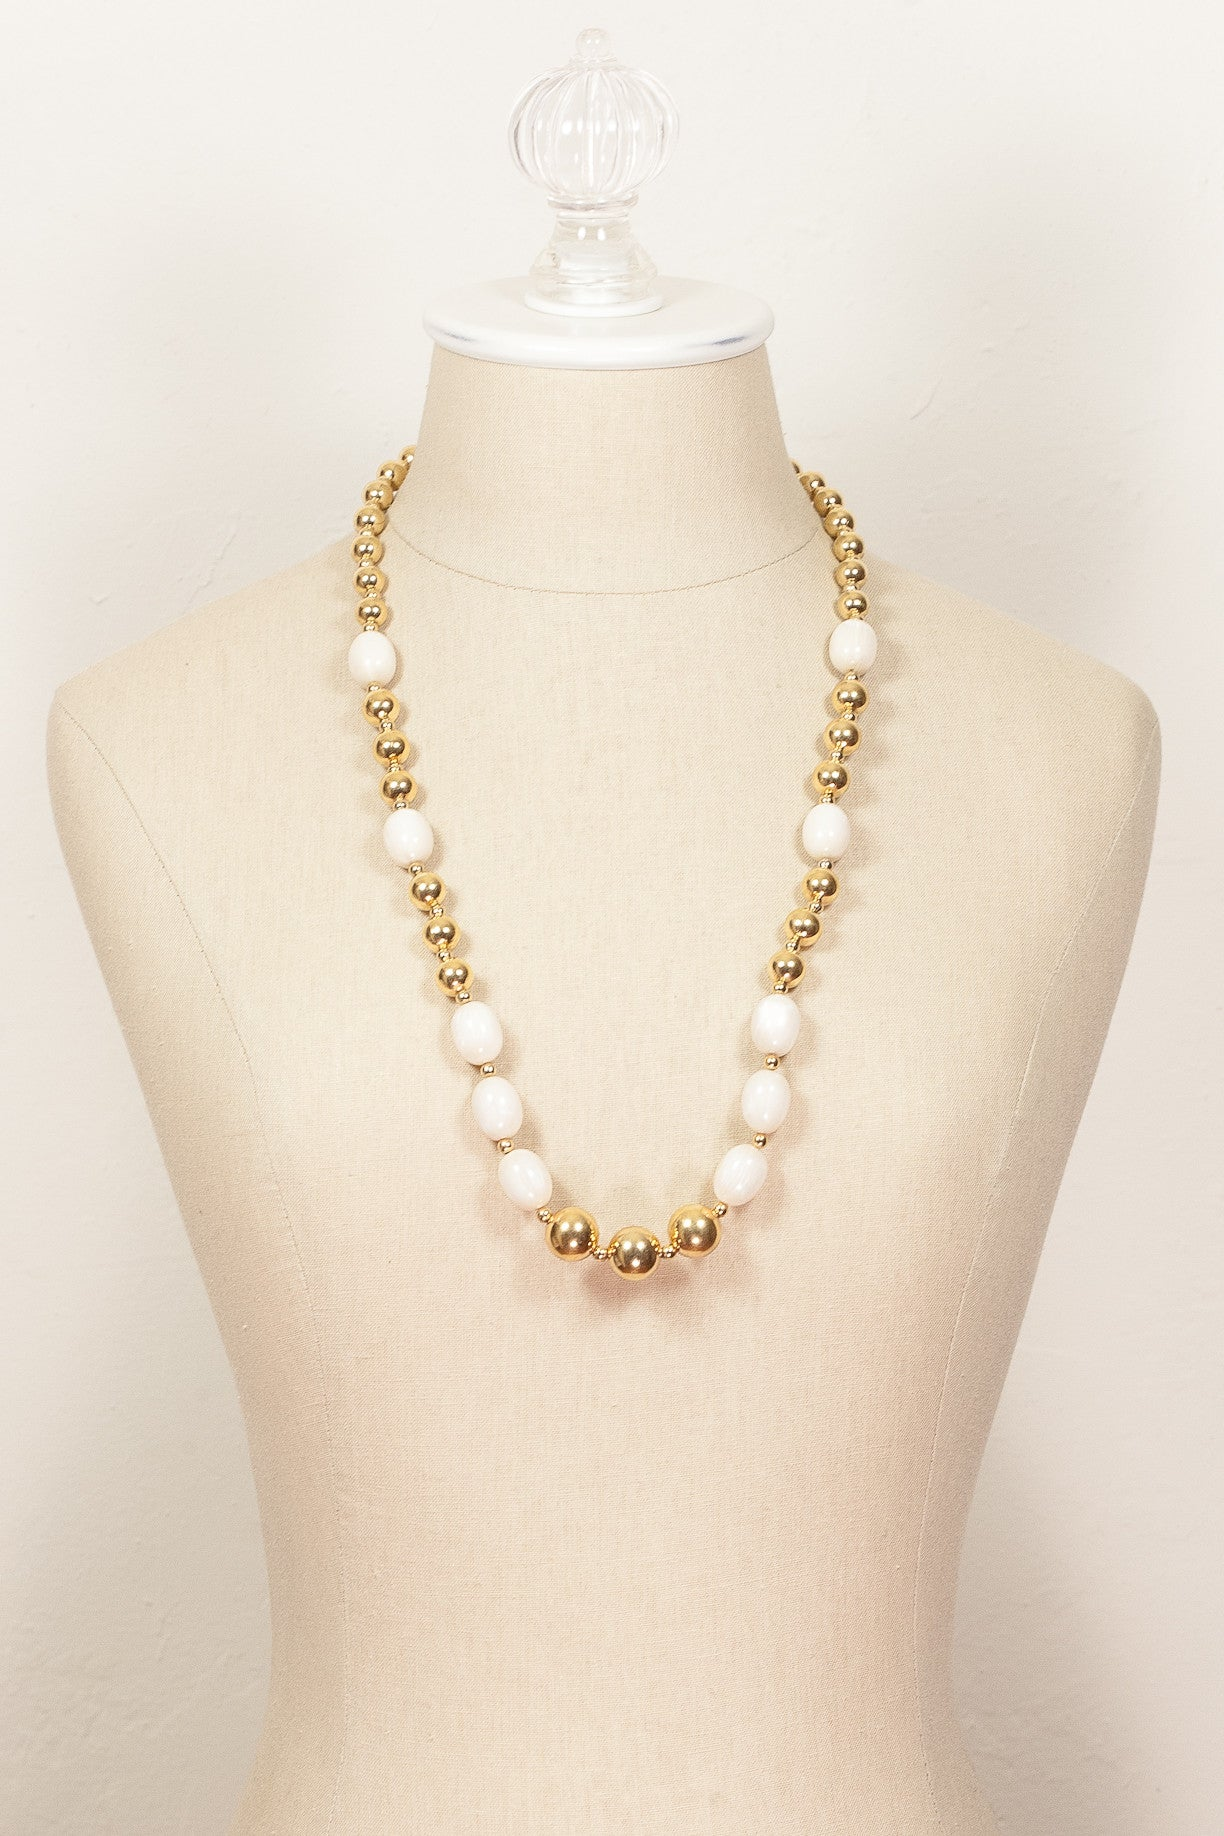 70's__Napier__White Bead and Gold Necklace